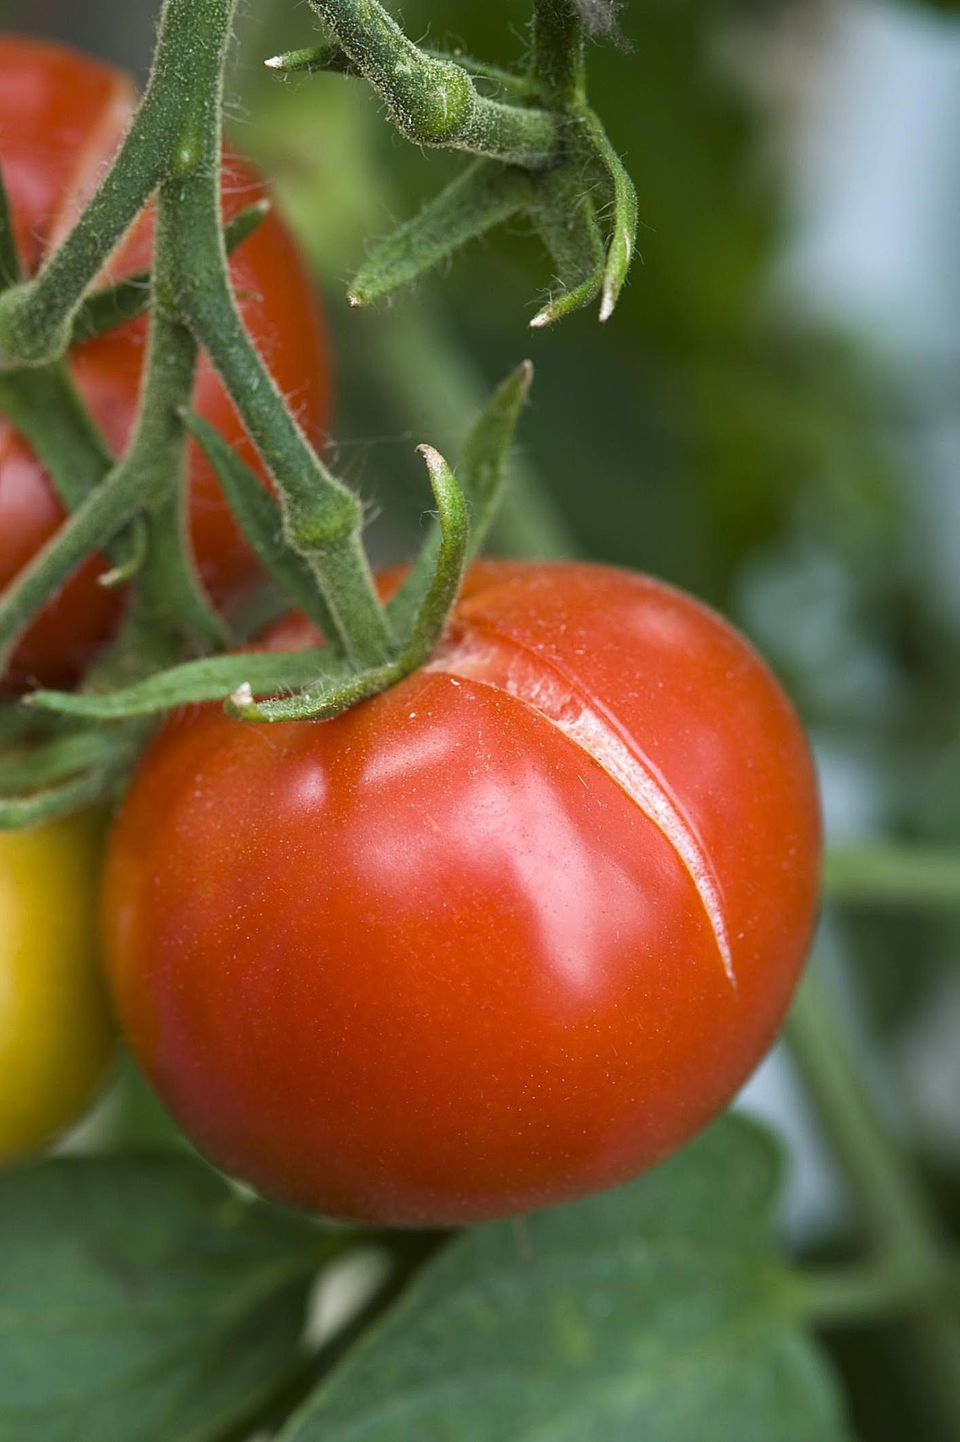 Ripe red tomato with split in skin